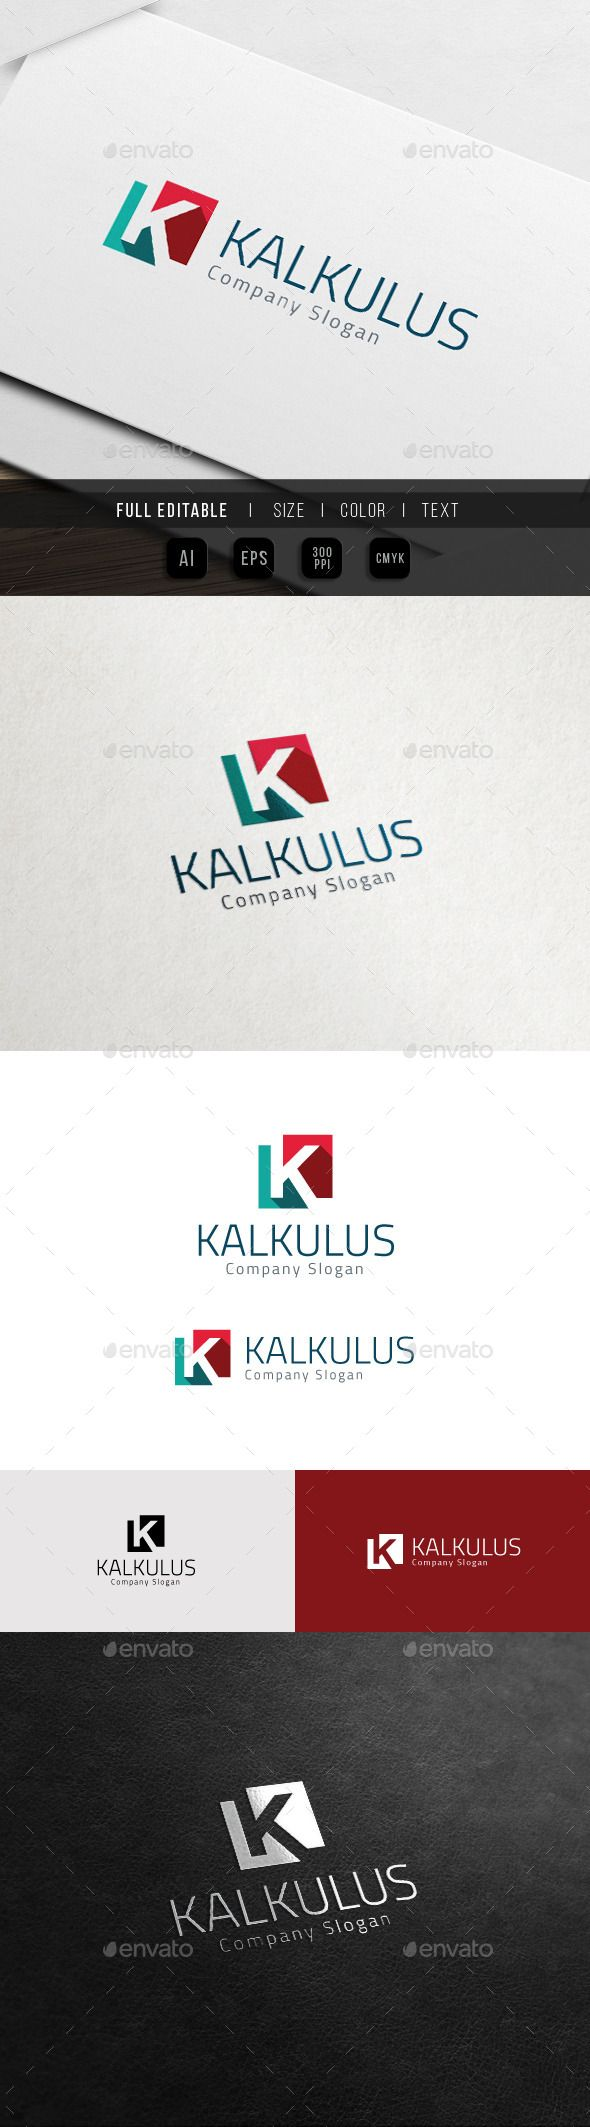 Corporate Brand  Marketing Finance  K Logo — Vector EPS #multimedia #real estate • Available here → https://graphicriver.net/item/corporate-brand-marketing-finance-k-logo/11515857?ref=pxcr